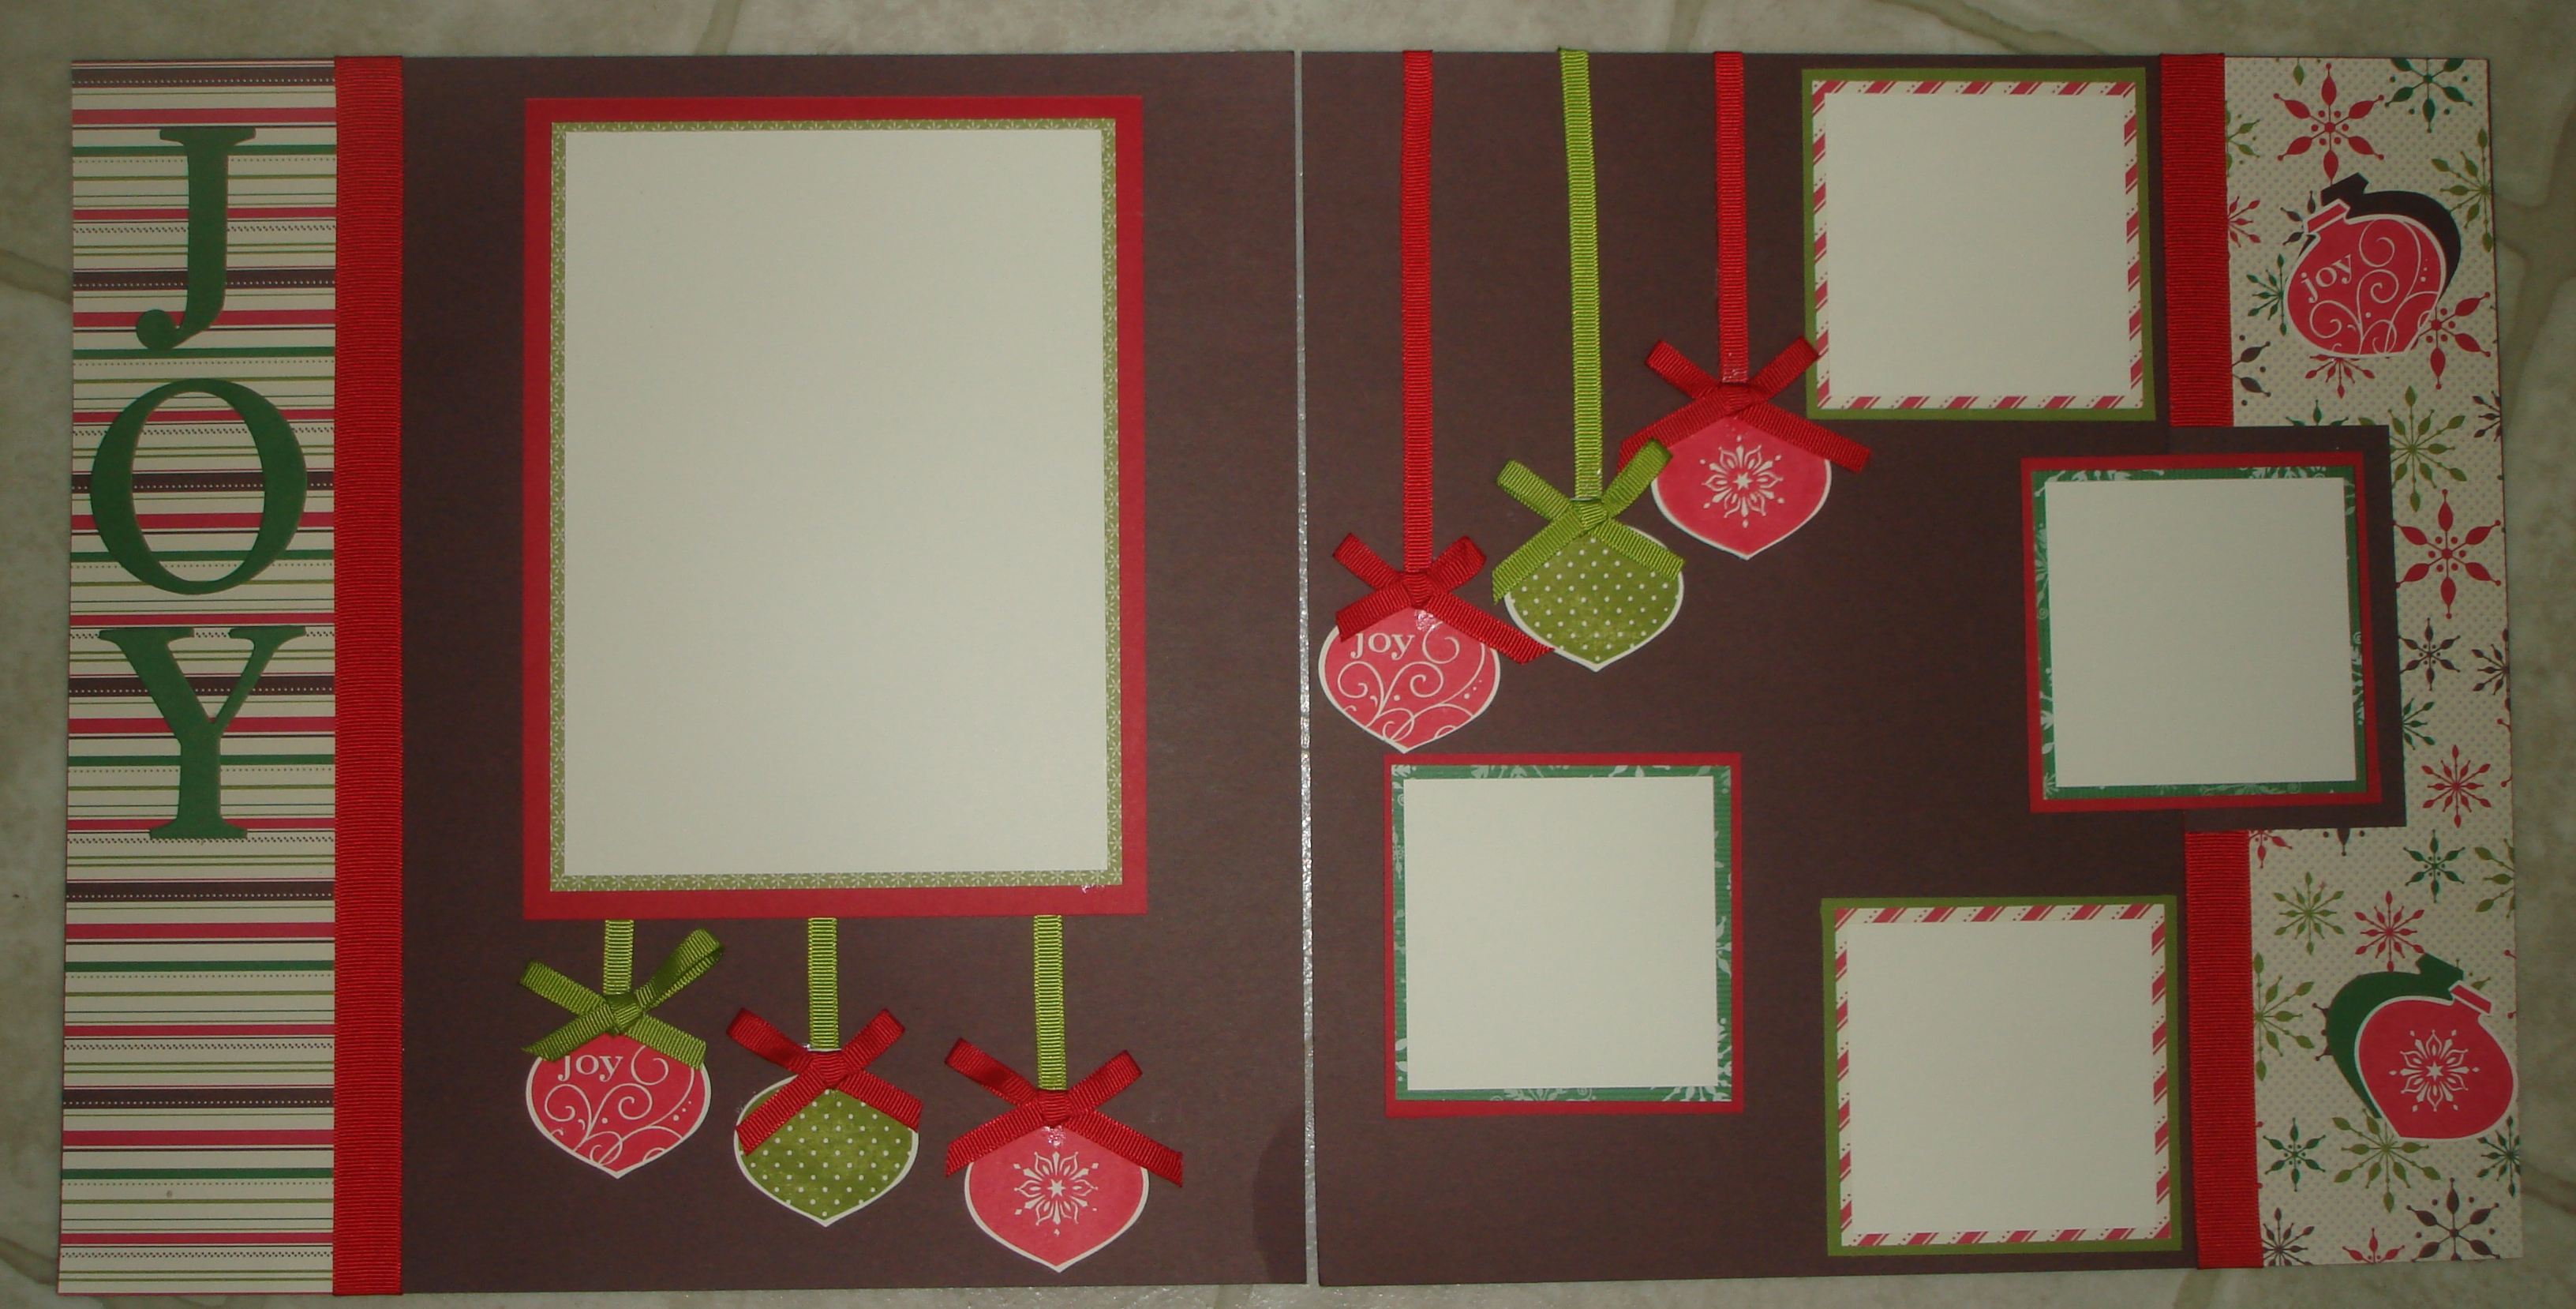 Stamperriffic: Scrapbook Pages